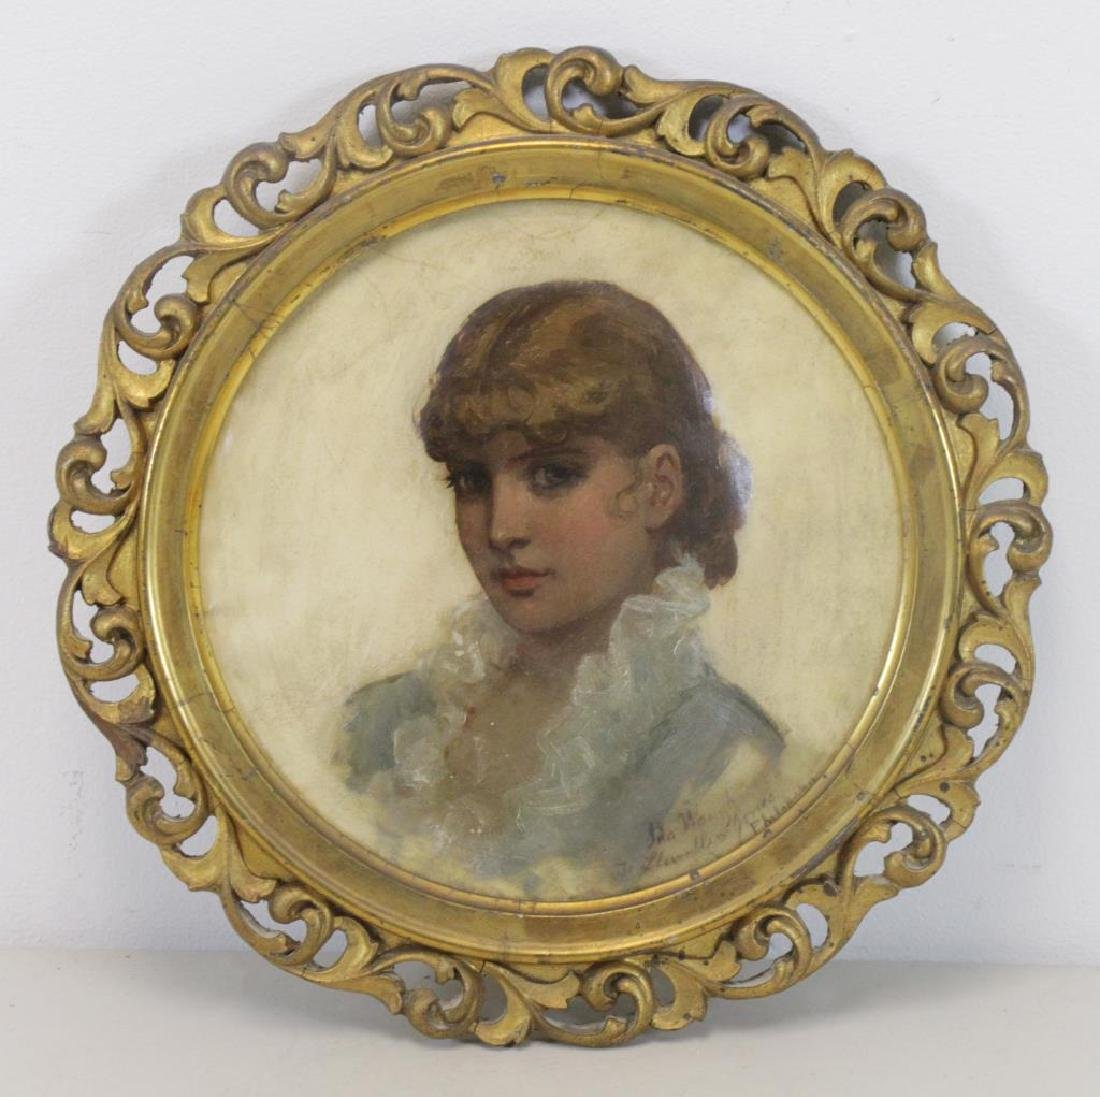 WAUGH, Ida. Oil on Vellum. Portrait of a Young